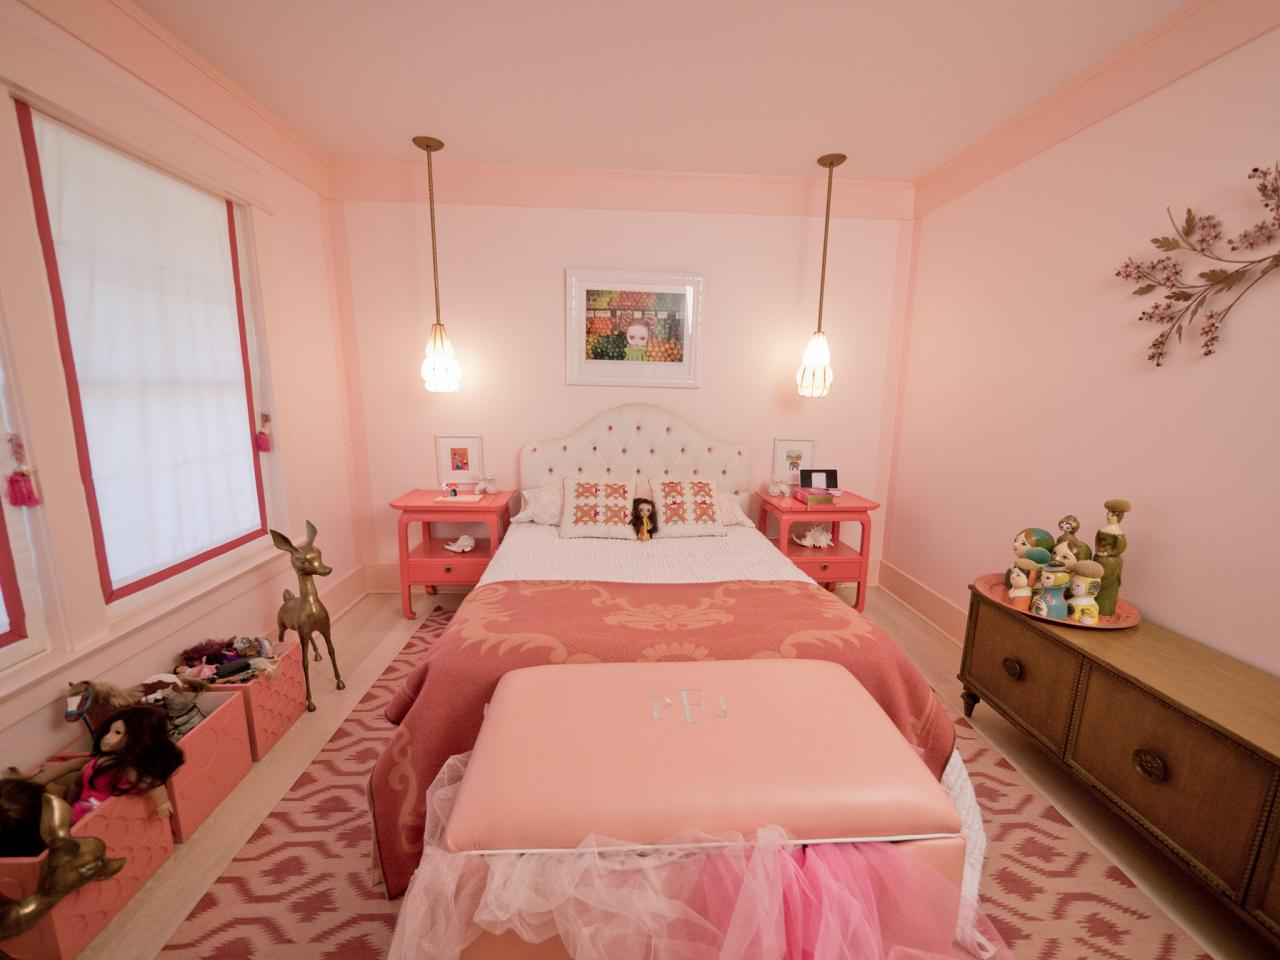 Bedroom color design for girls - Girly Retro Inspired Pink Bedroom